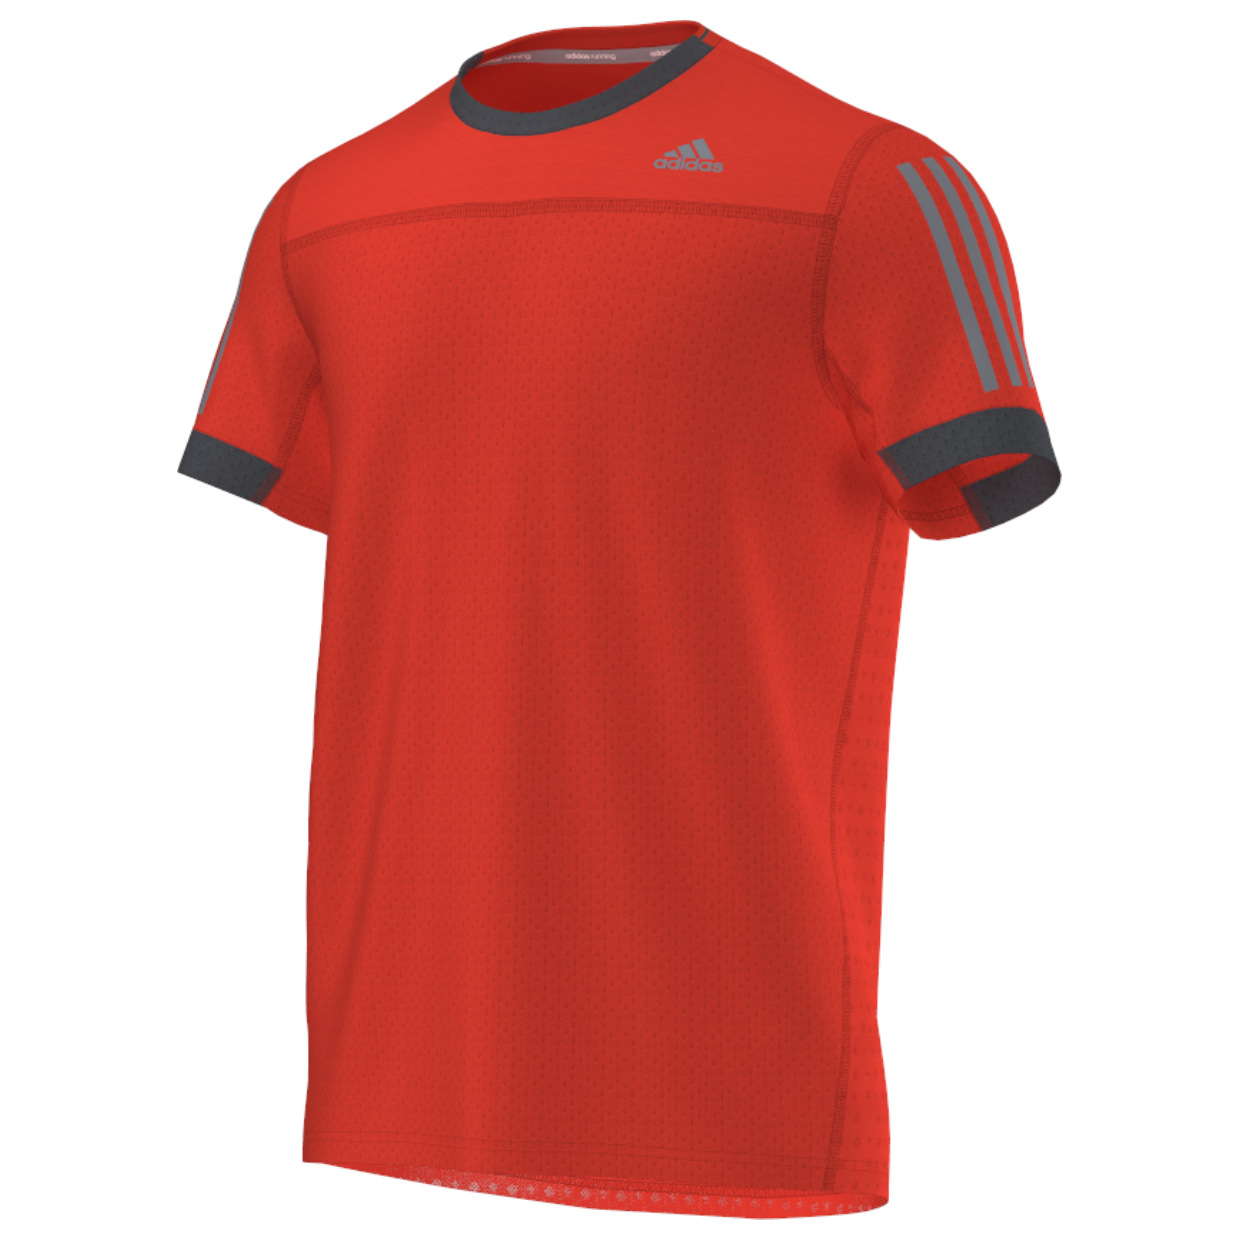 Adidas Supernova T-Shirt Orange